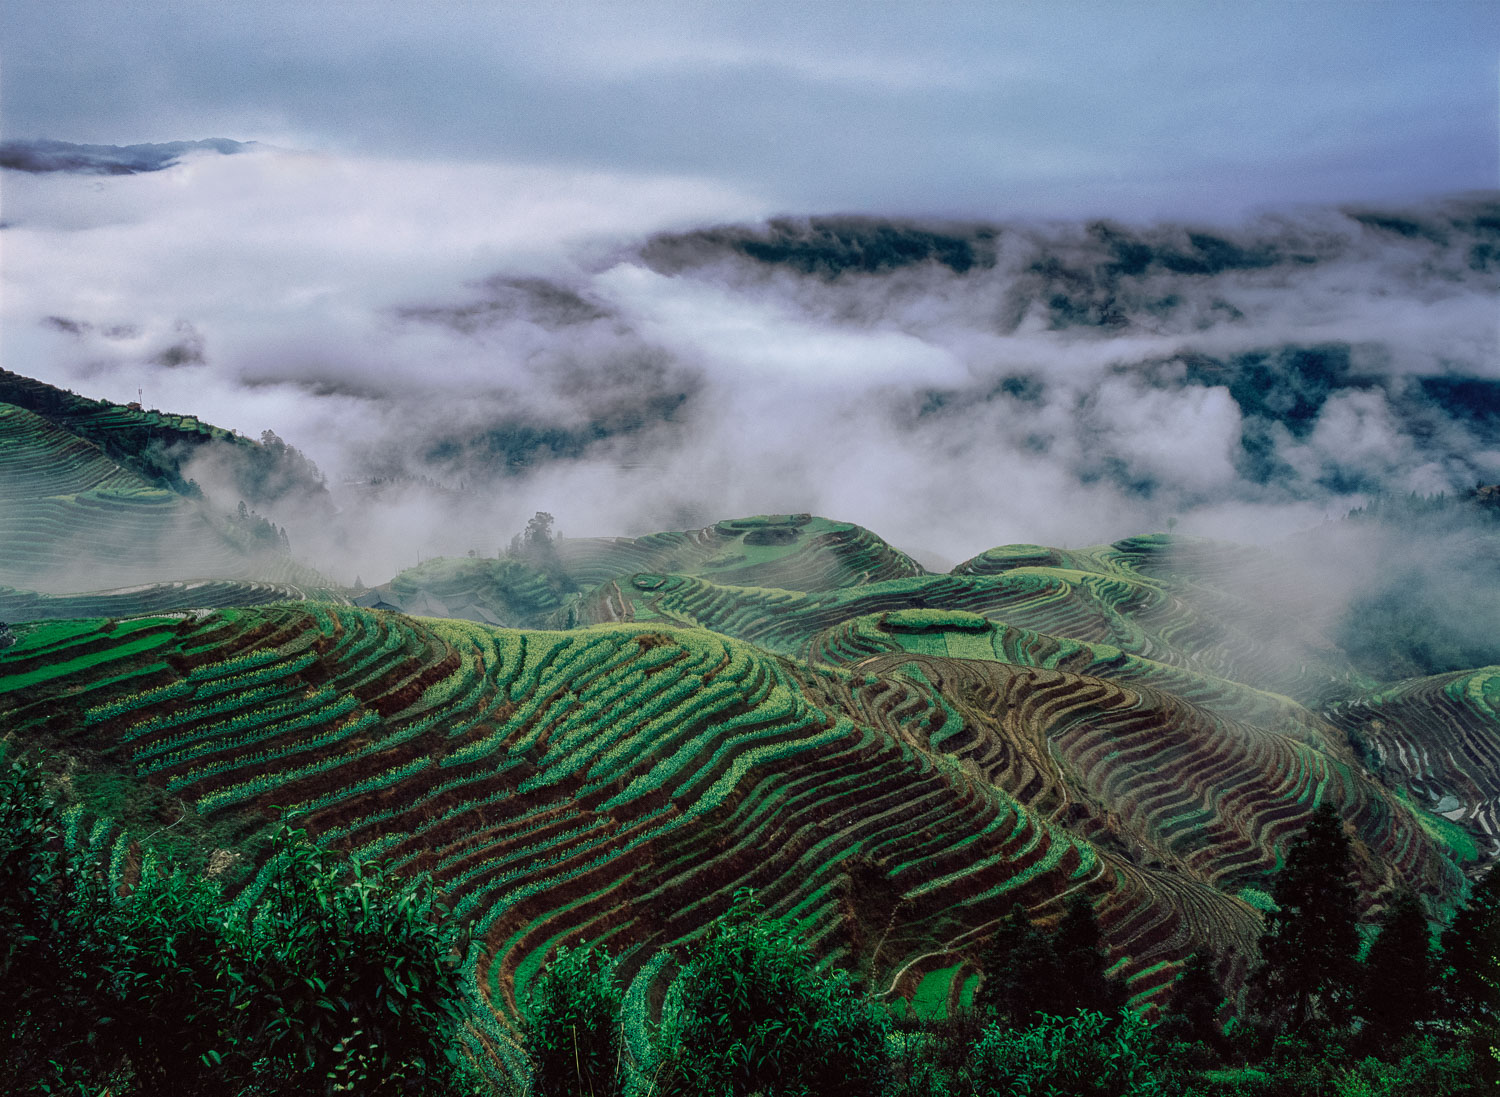 """Terraced Verde"" Dragon's Backbone Rice Terraces, Guangxi, China"